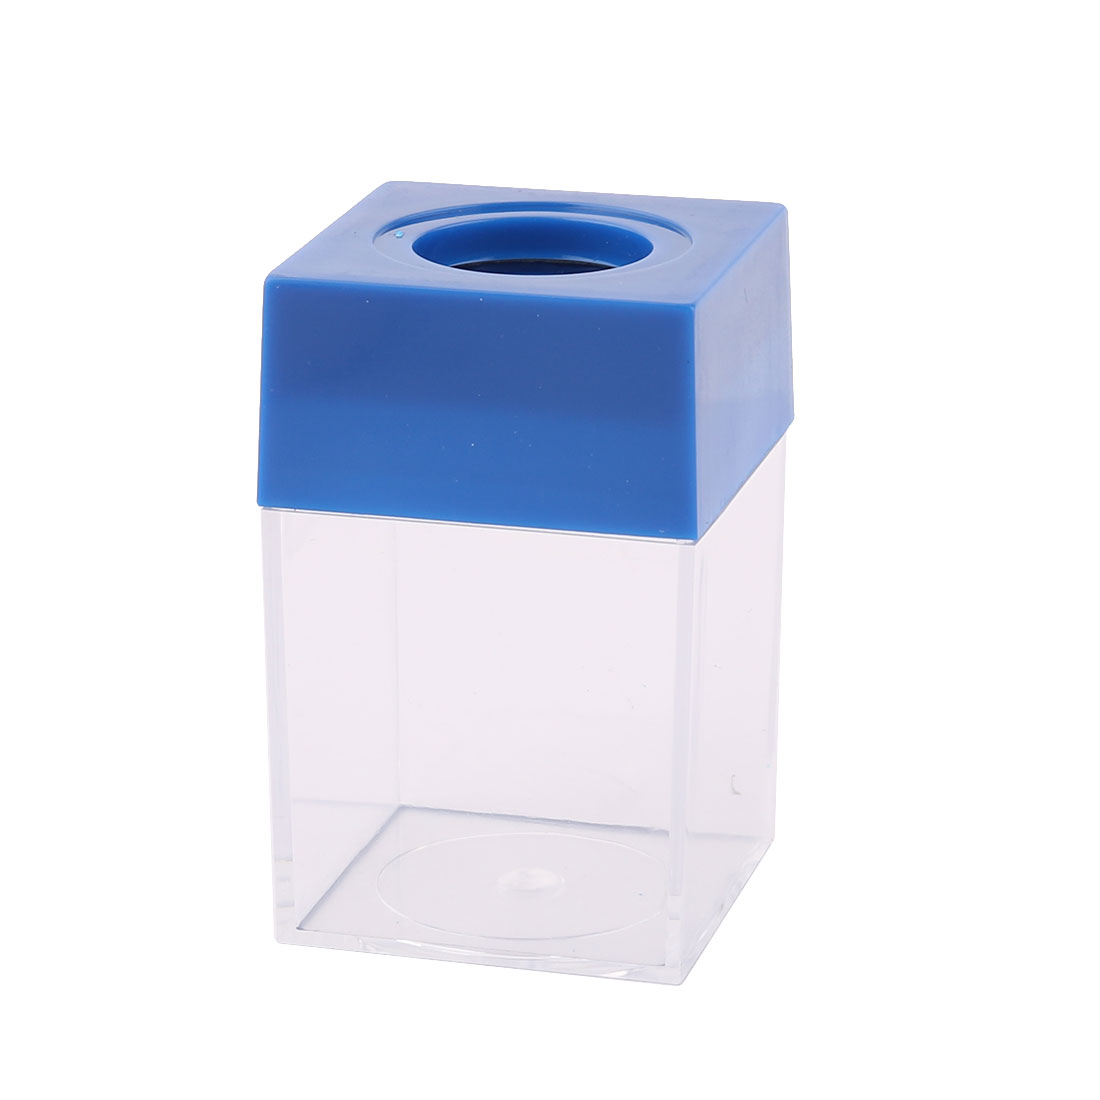 Office Home Plastic Square Shaped Paper Clip Dispenser Holder Box Case Container Blue